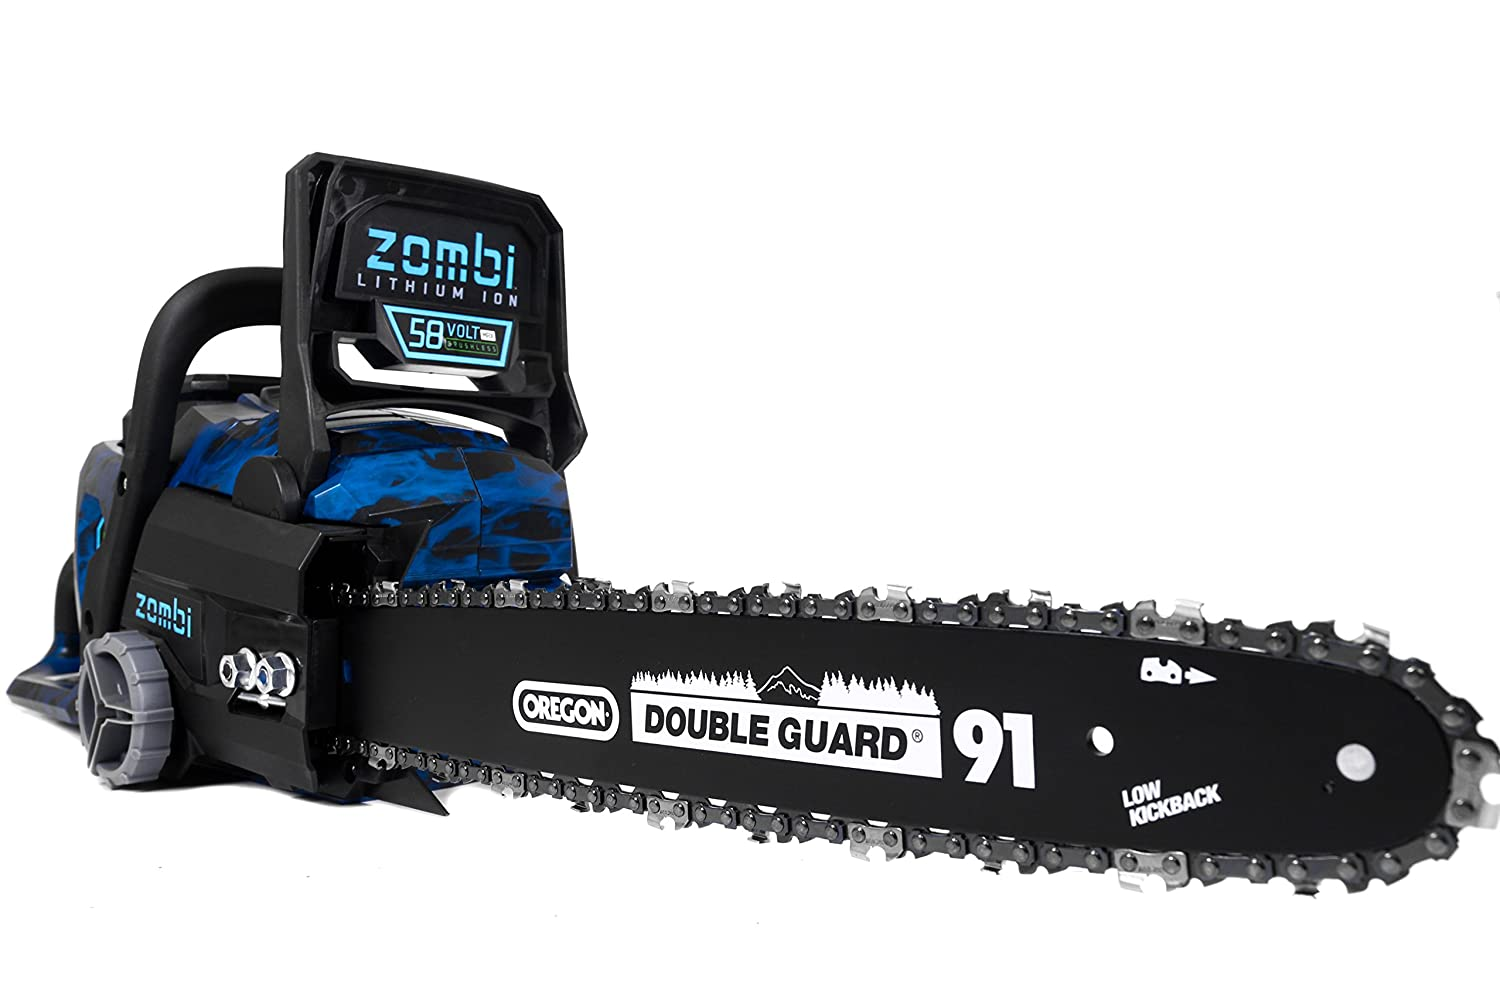 Zombi Power Tools ZCS5817 Chainsaws product image 7